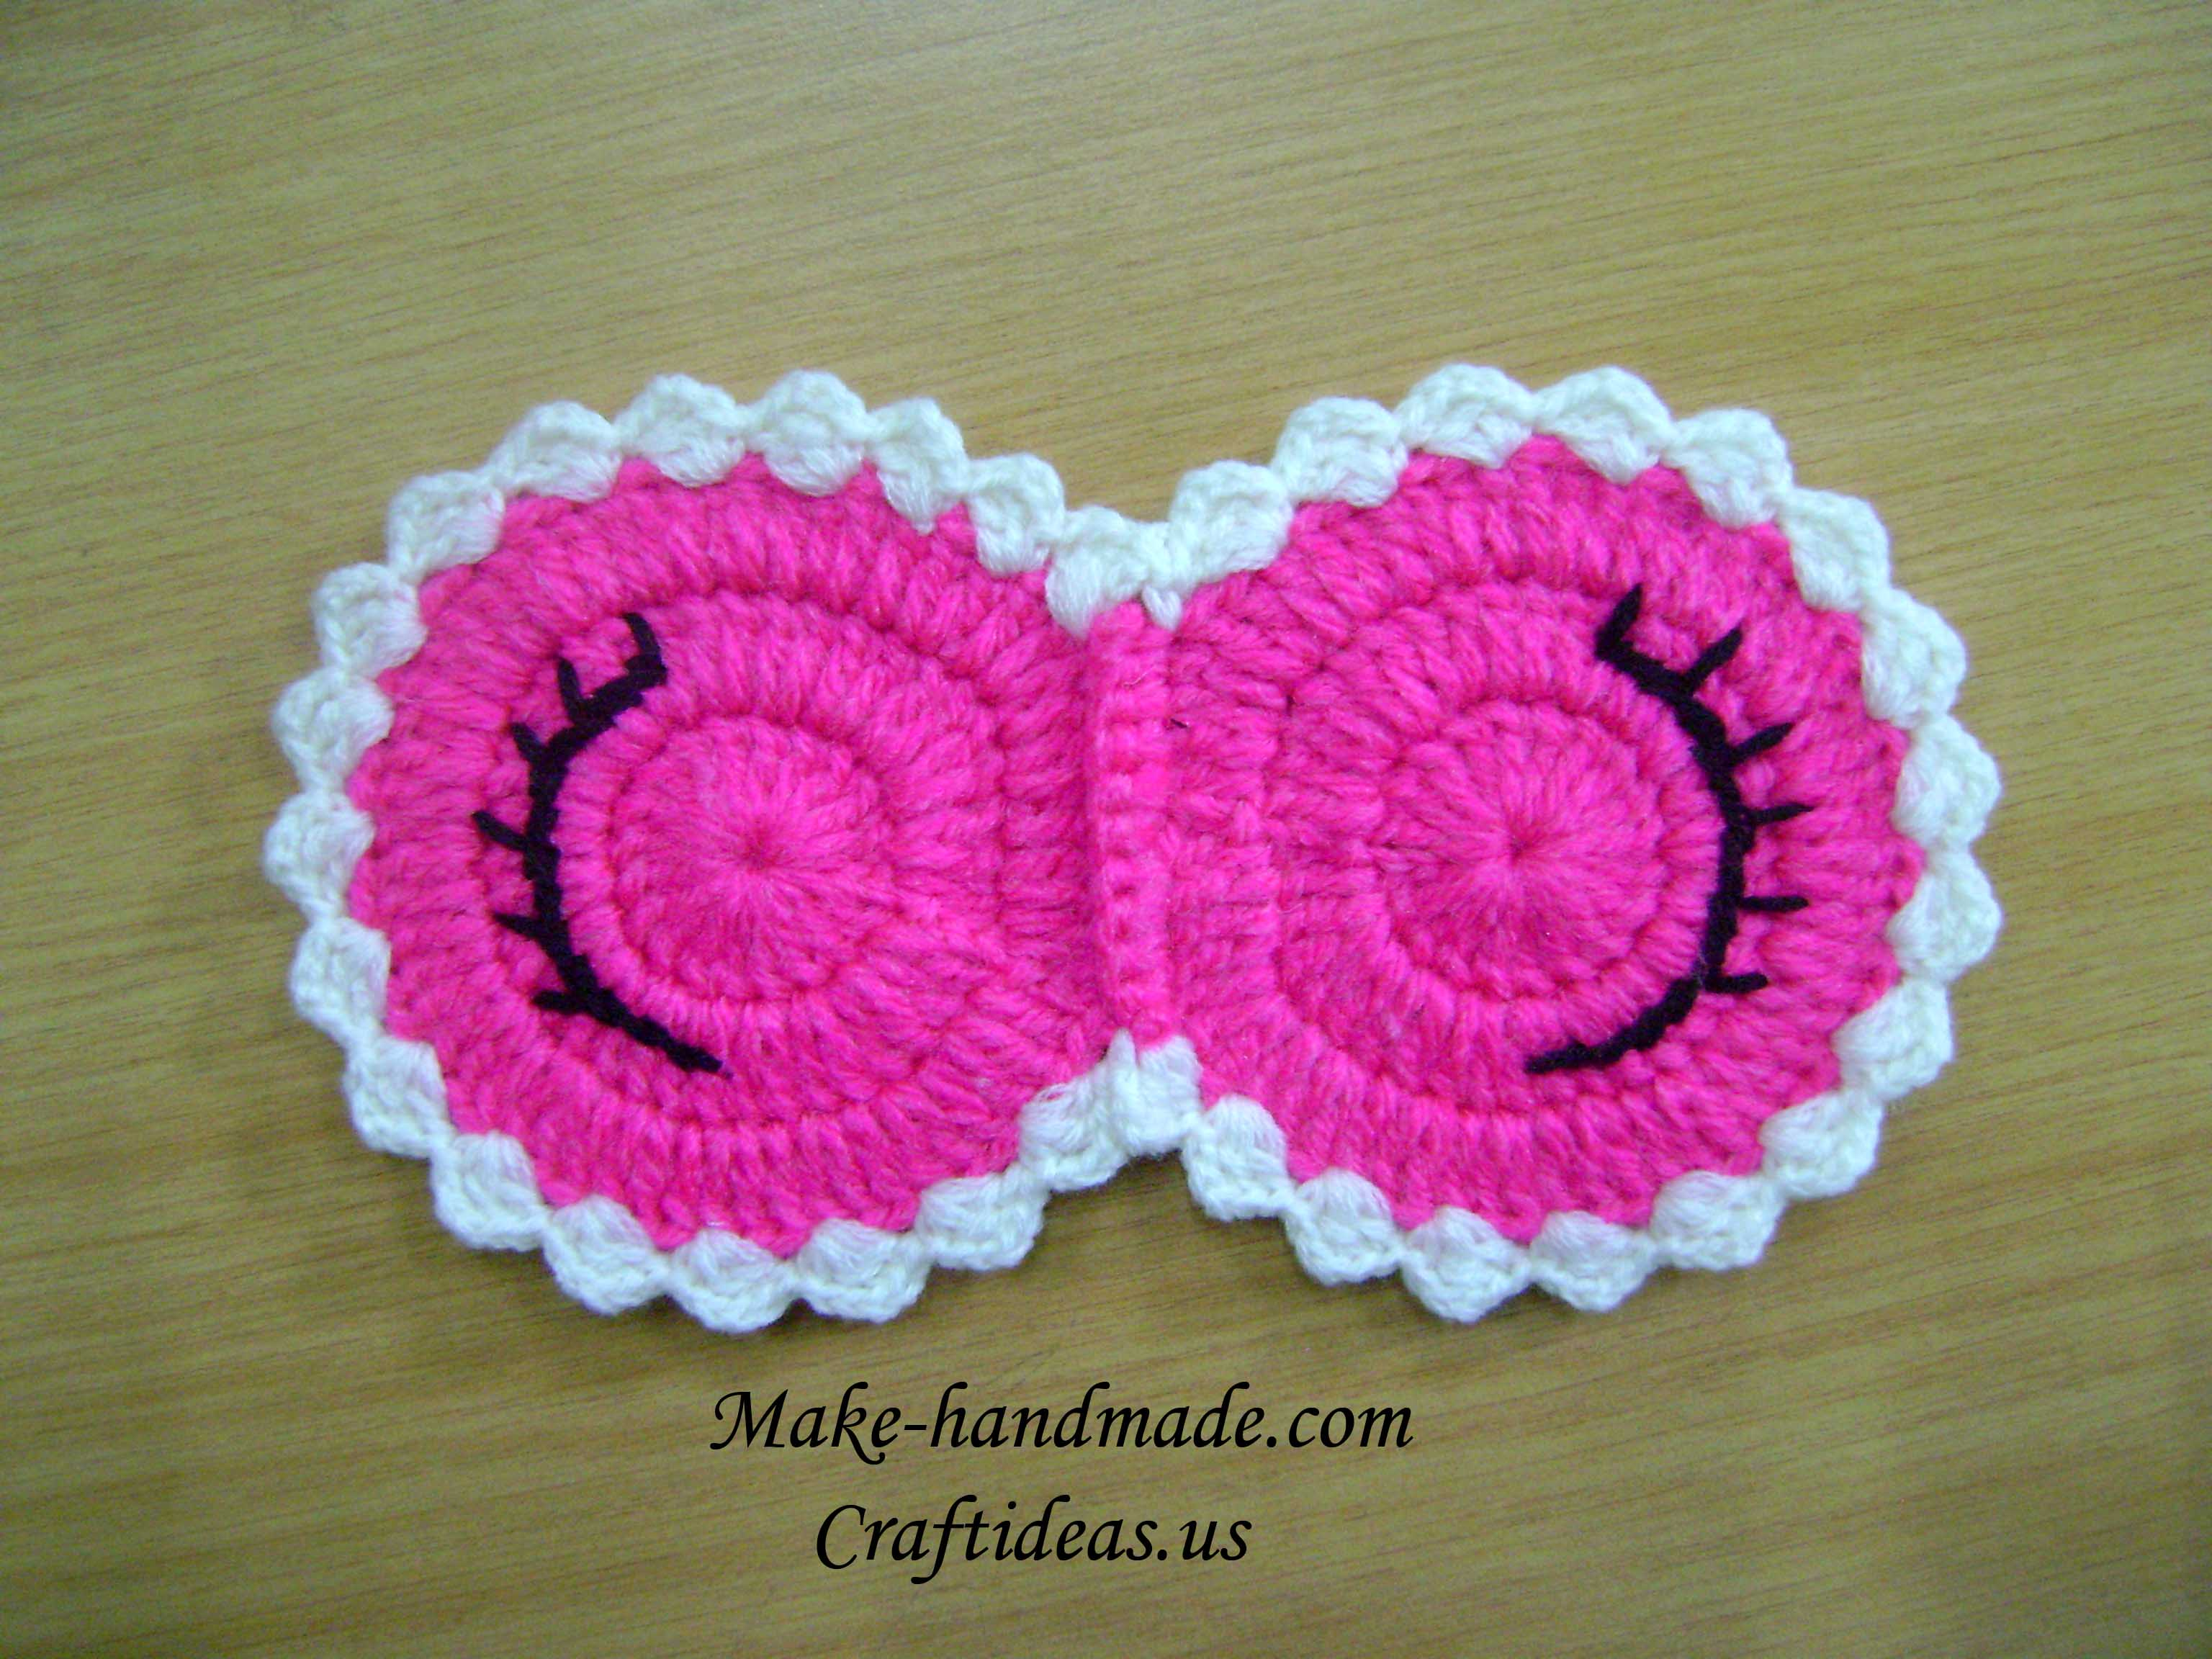 Crocheting Gifts Ideas : Crochet sleeping mask - Craft Ideas